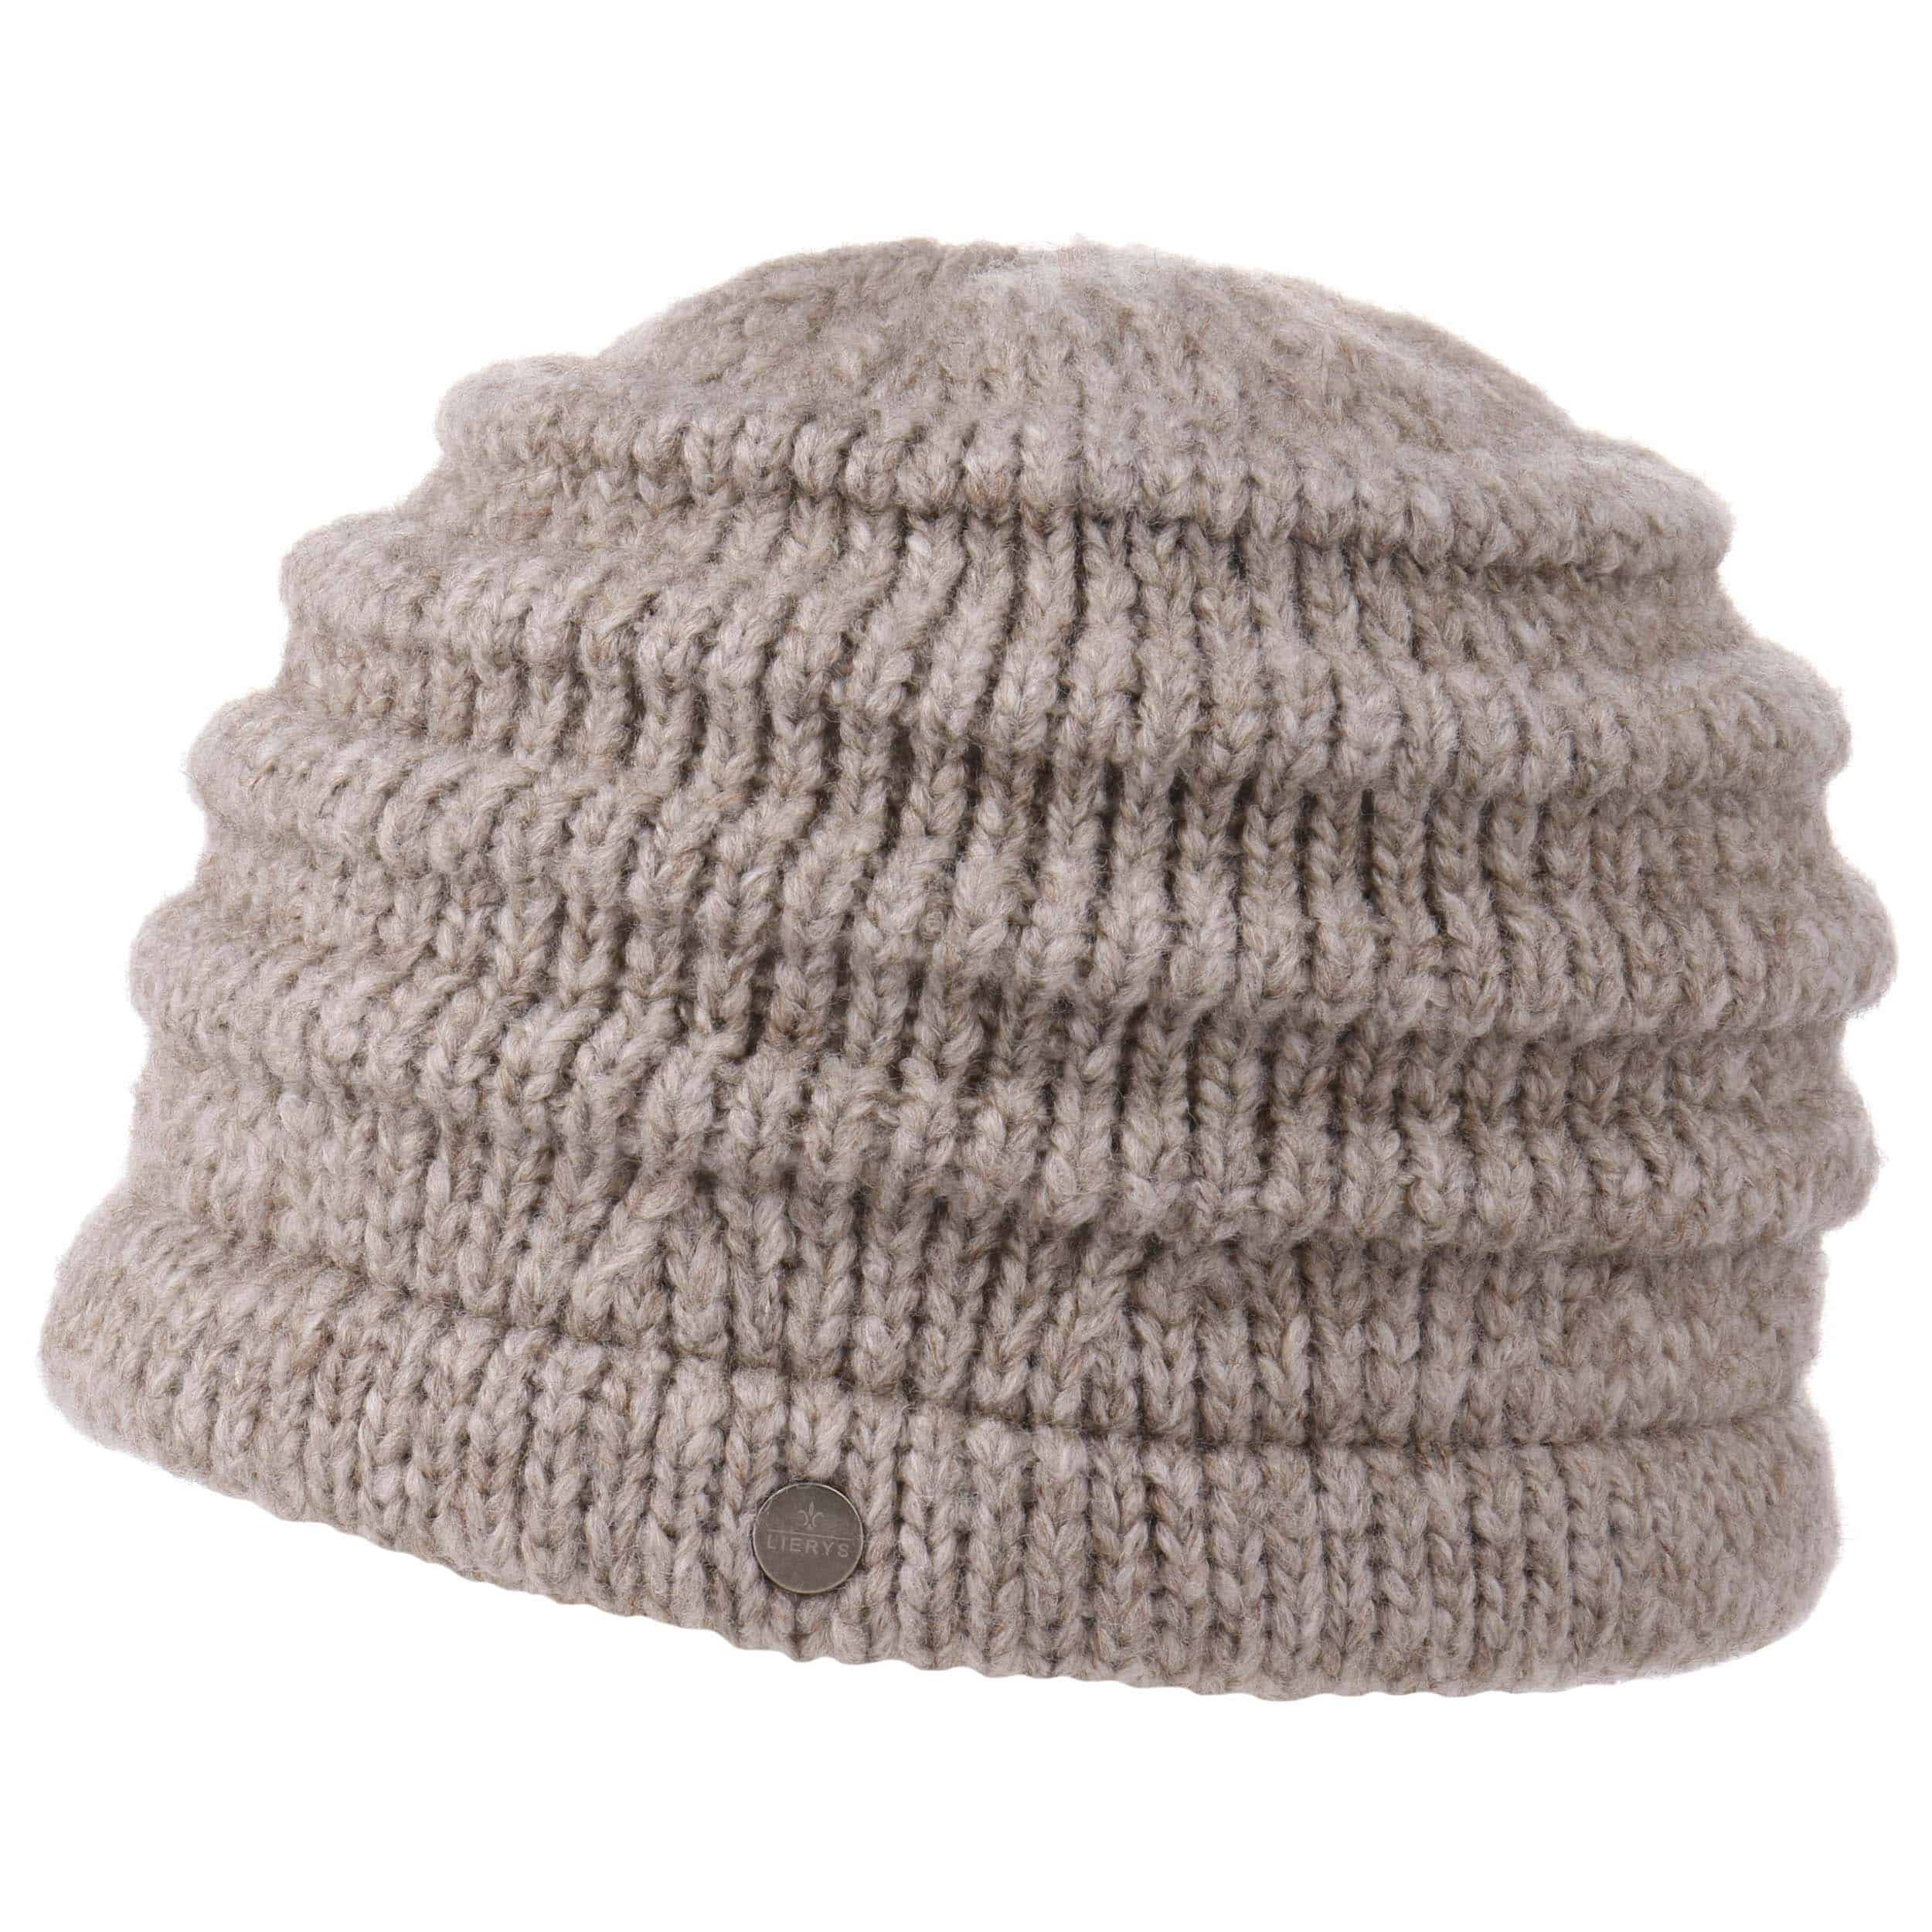 Knitting Pattern For Mohair Hat : My-Mohair Knit Hat by Lierys, EUR 39,95 --> Hats, caps & beanies shop ...